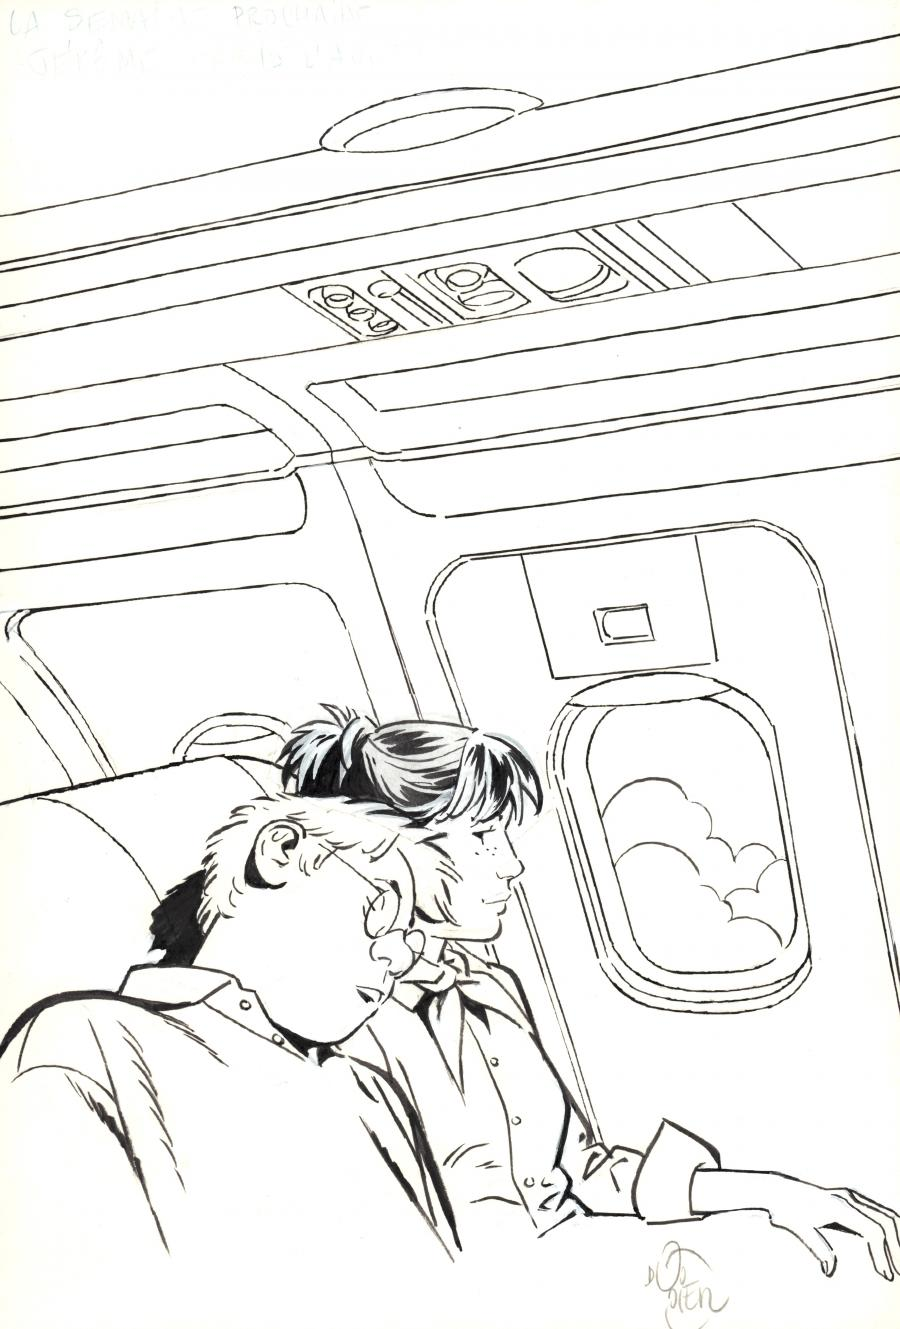 Original comic illustration from JEROME K. JEROME BLOCHE for Journal de Spirou by Alain DODIER